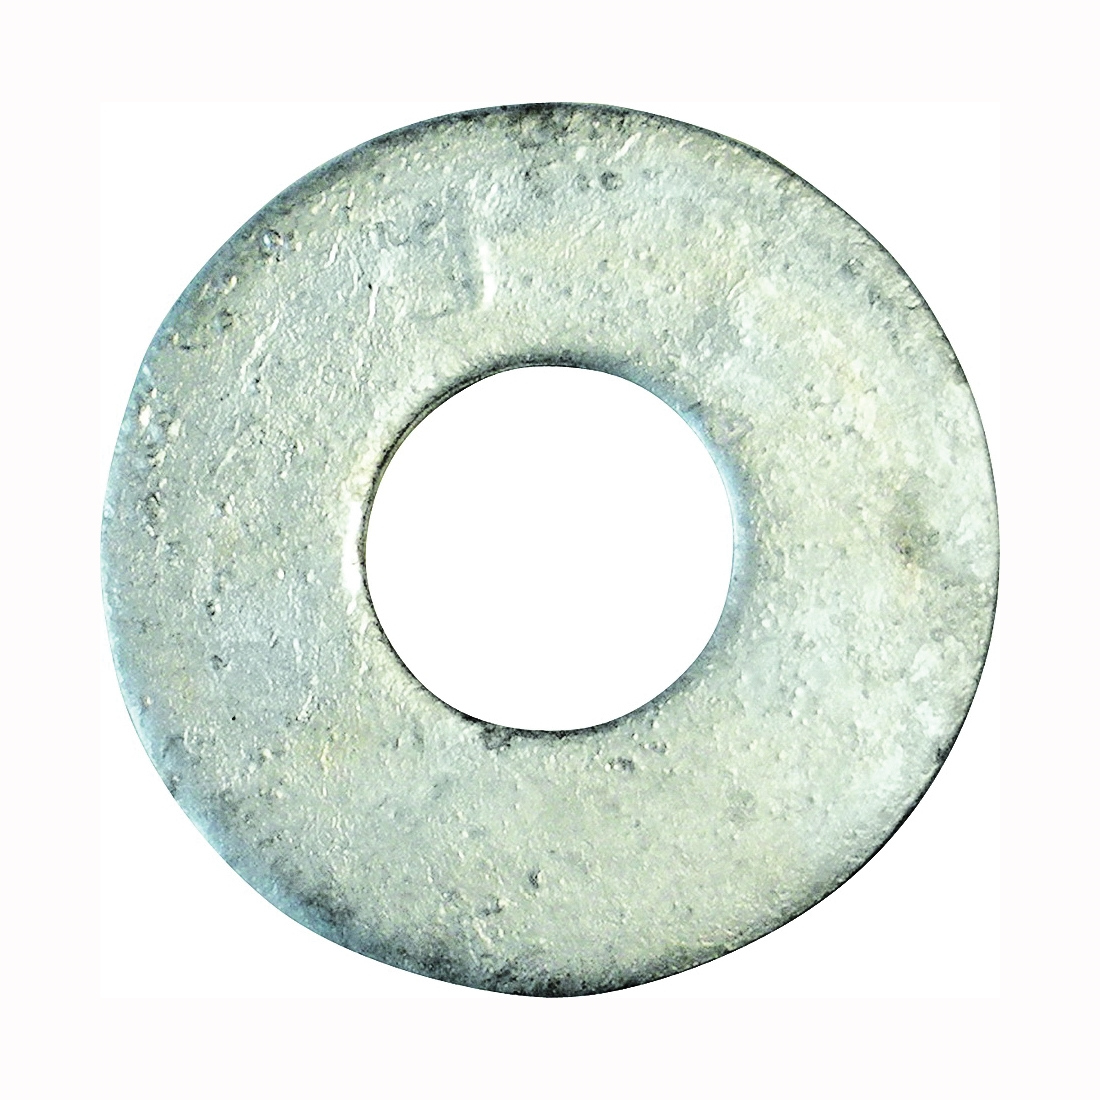 Picture of PFC P44008-PR Flat Washer, 3/4 in ID, Galvanized, USS Grade